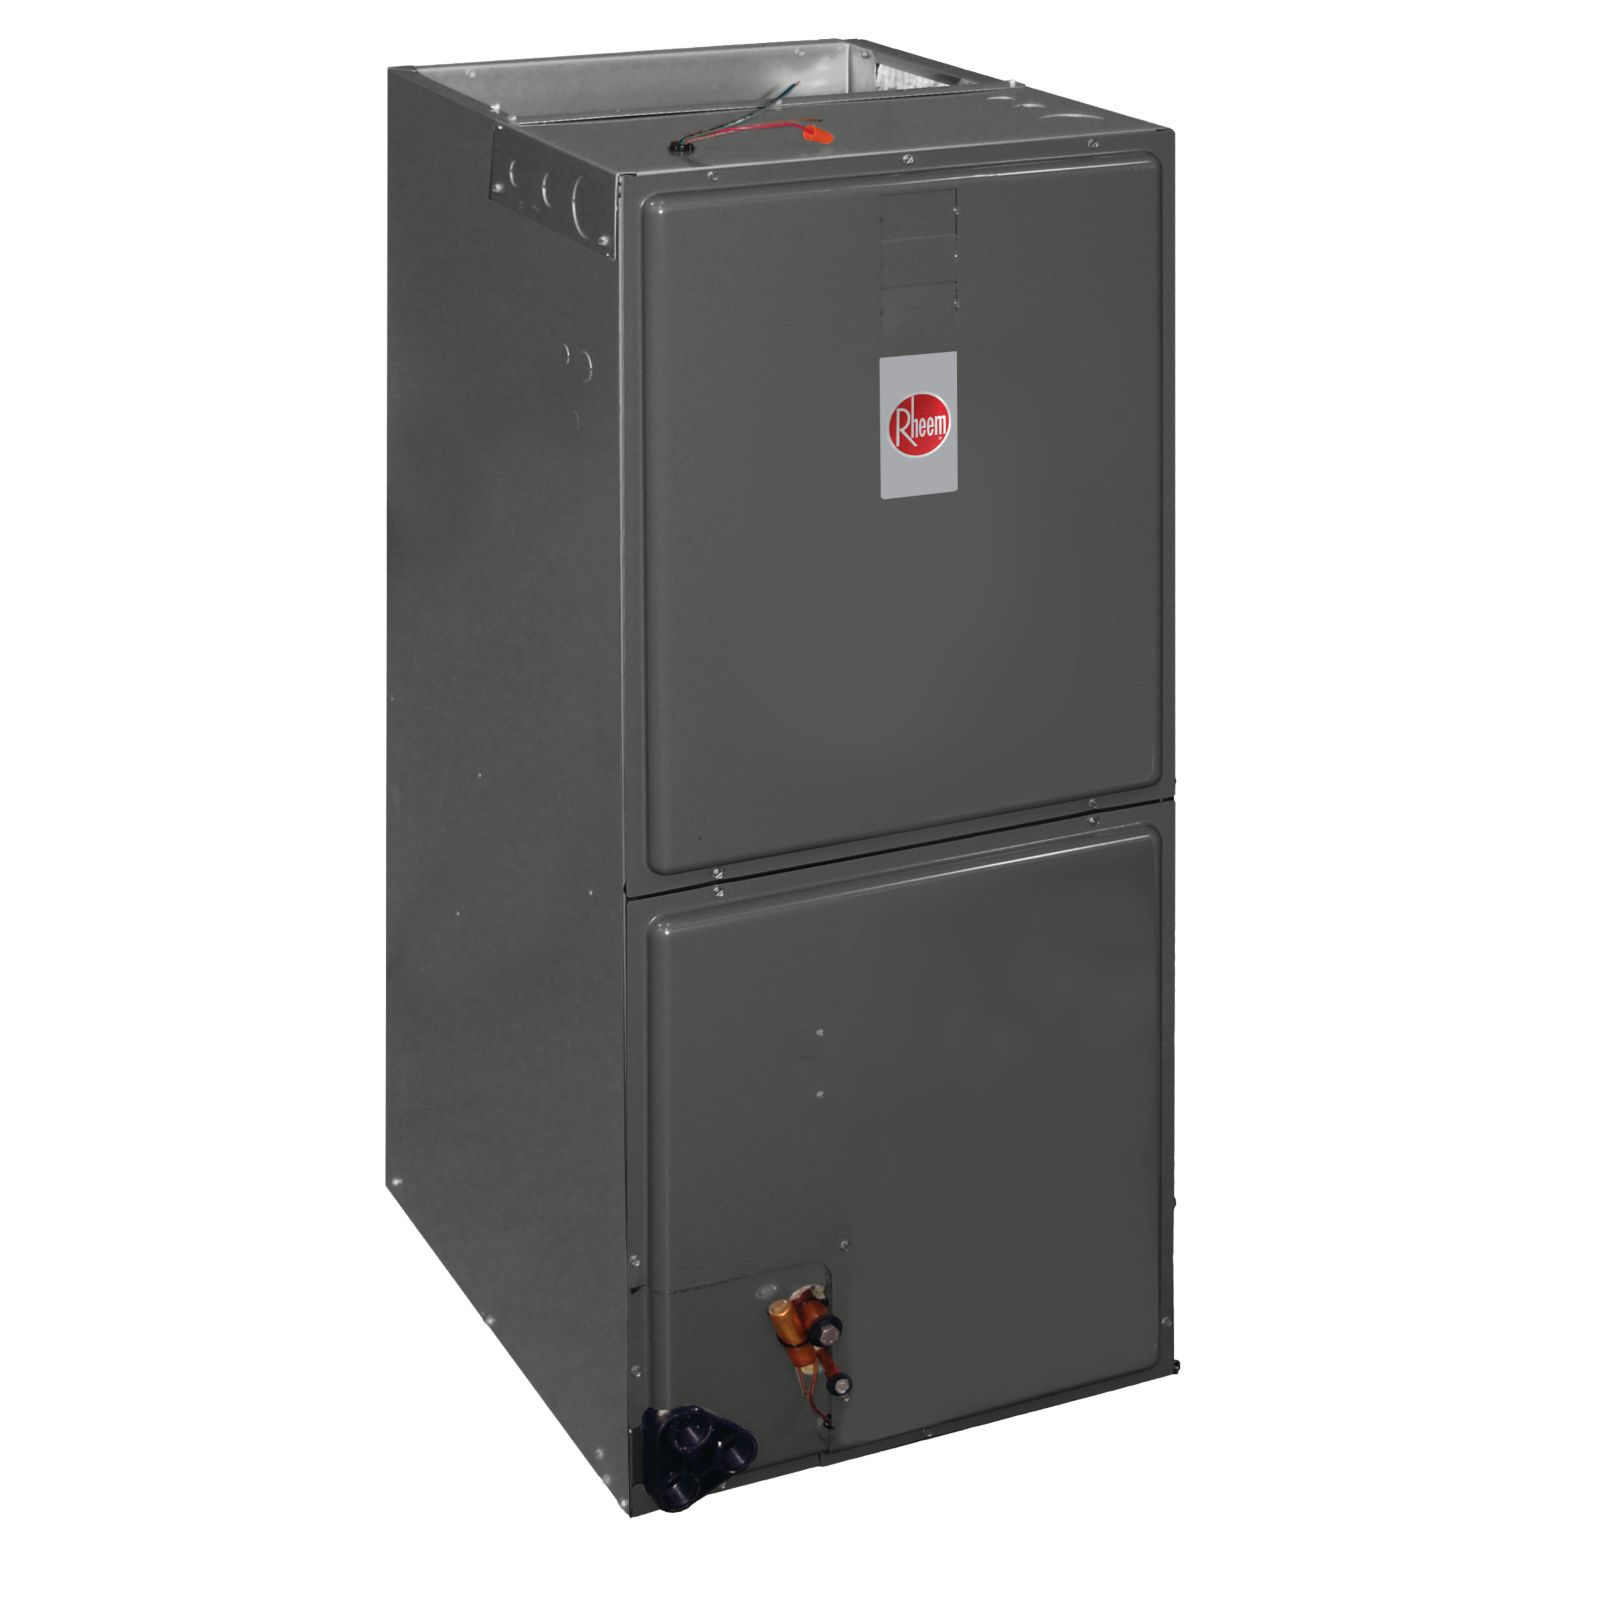 Rheem RHLL-HM3617JA - RHLL Series 3 Ton Multiposition High Efficiency Air Handler - Up to 16 SEER - R410A - X13 (ECM) Motor